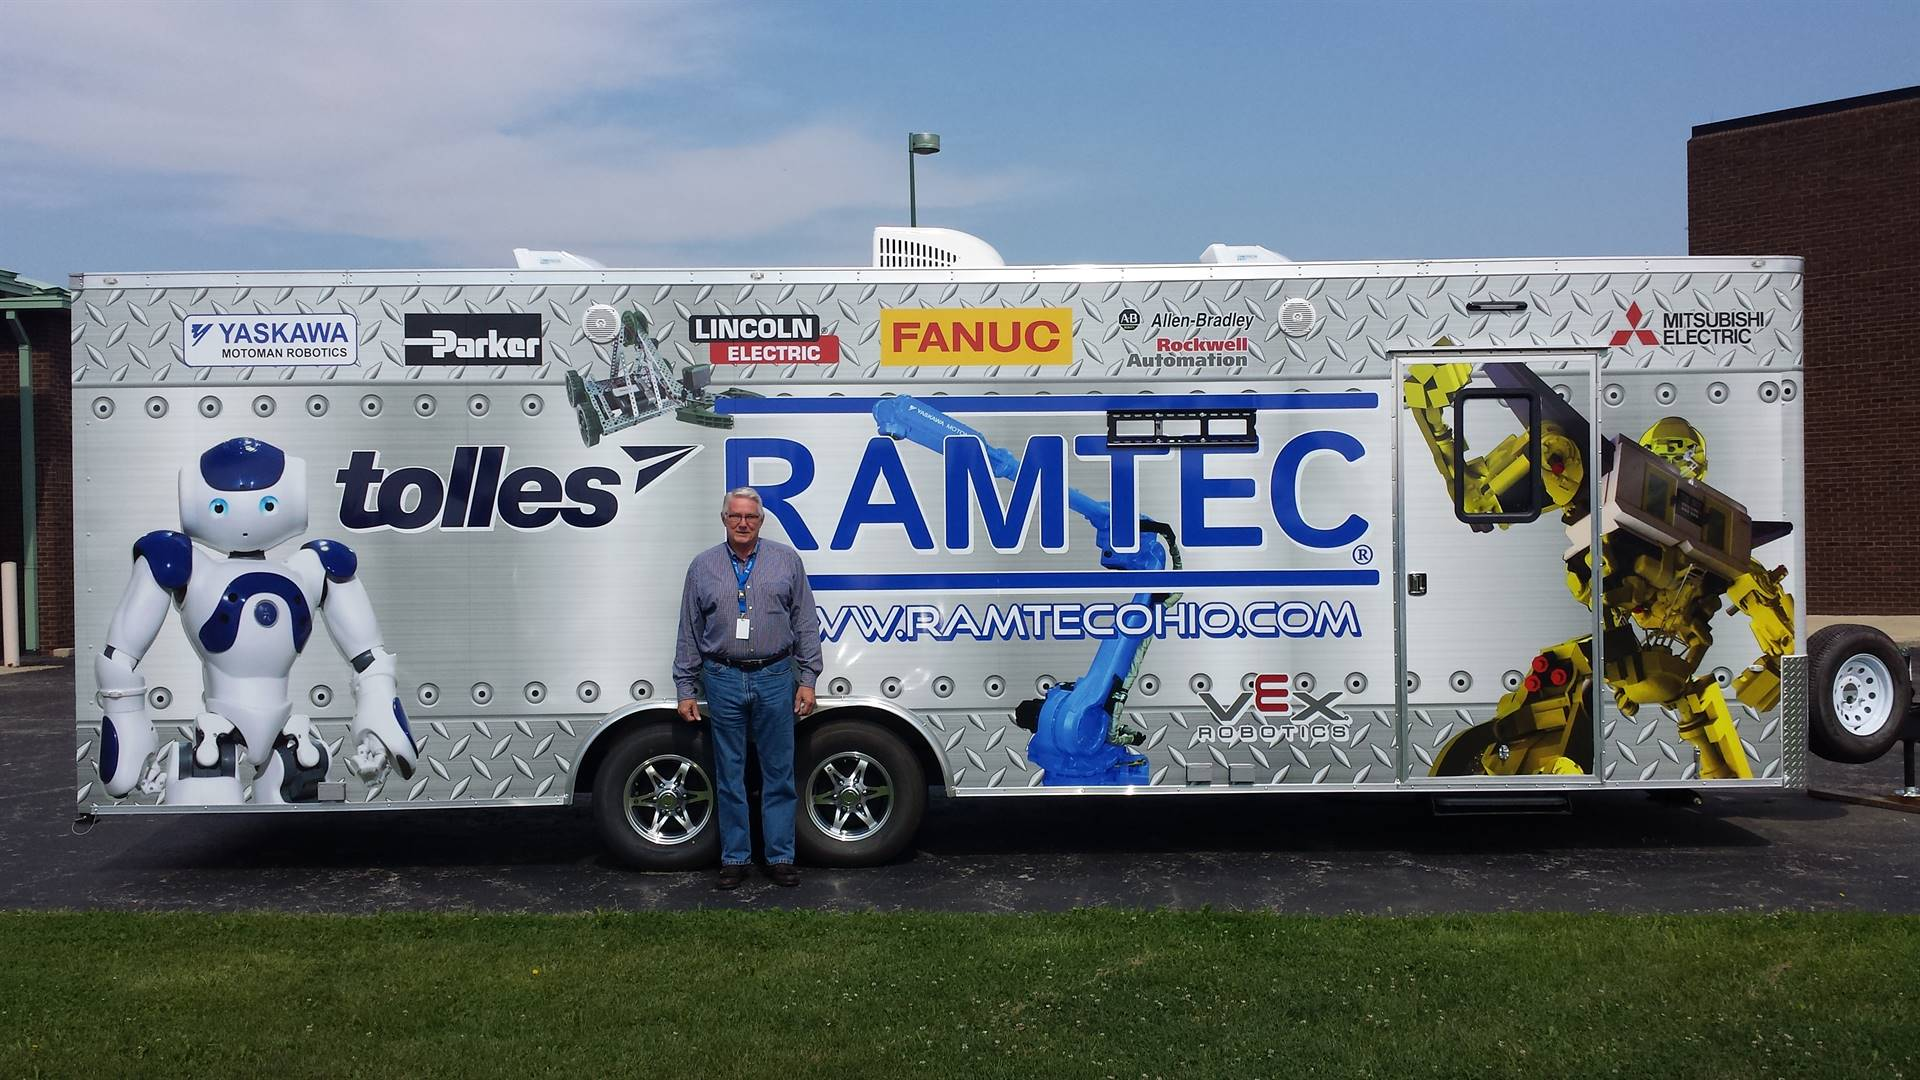 RAMTEC Coordinator Milt Kniss with the new RAMTEC Mobile Lab